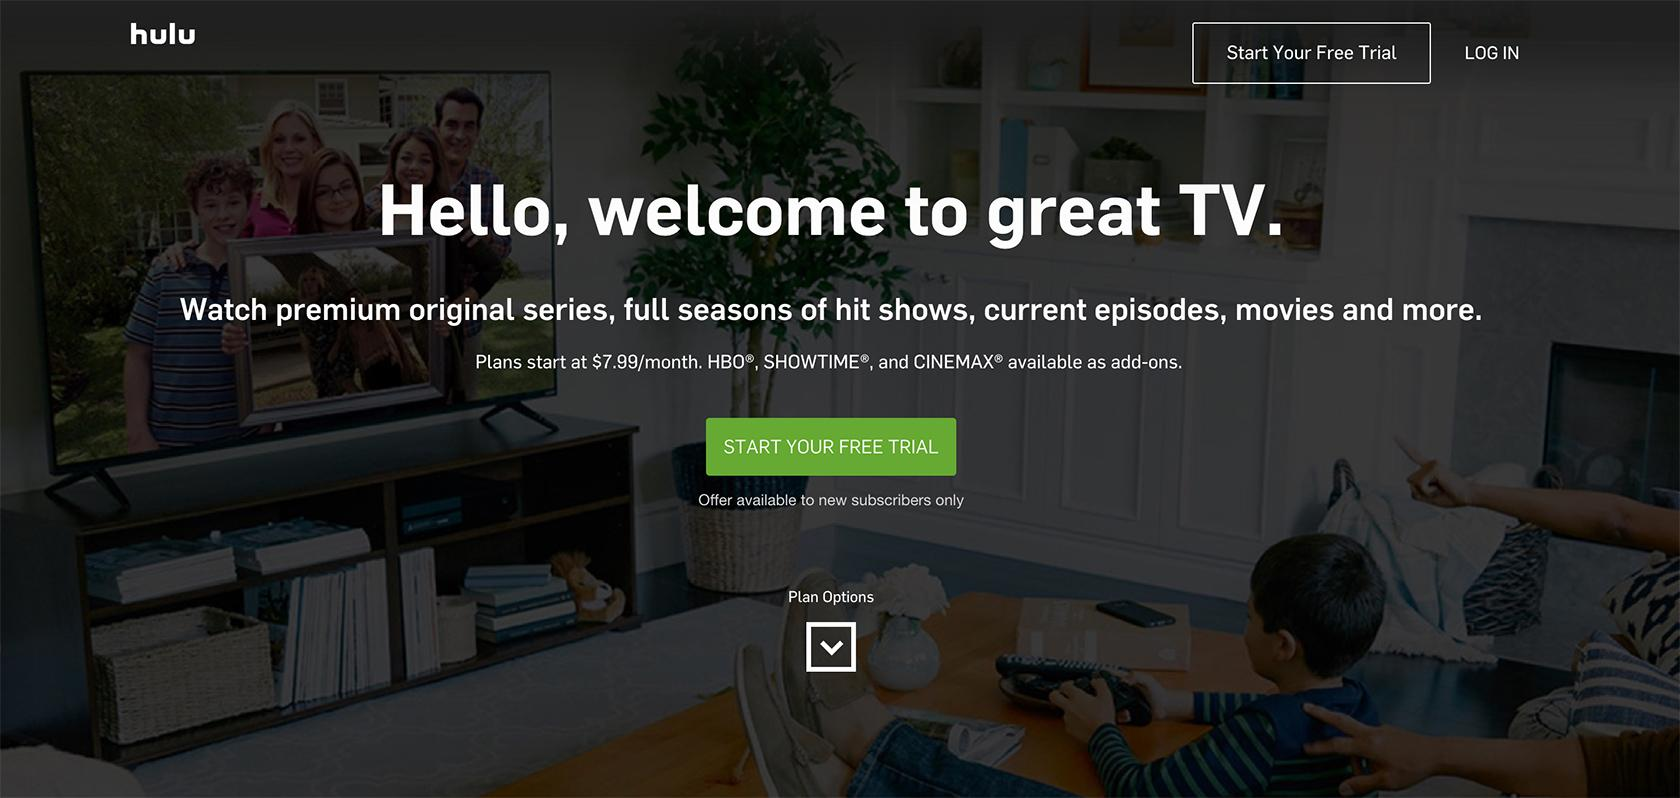 hulu trial reciprocity in action